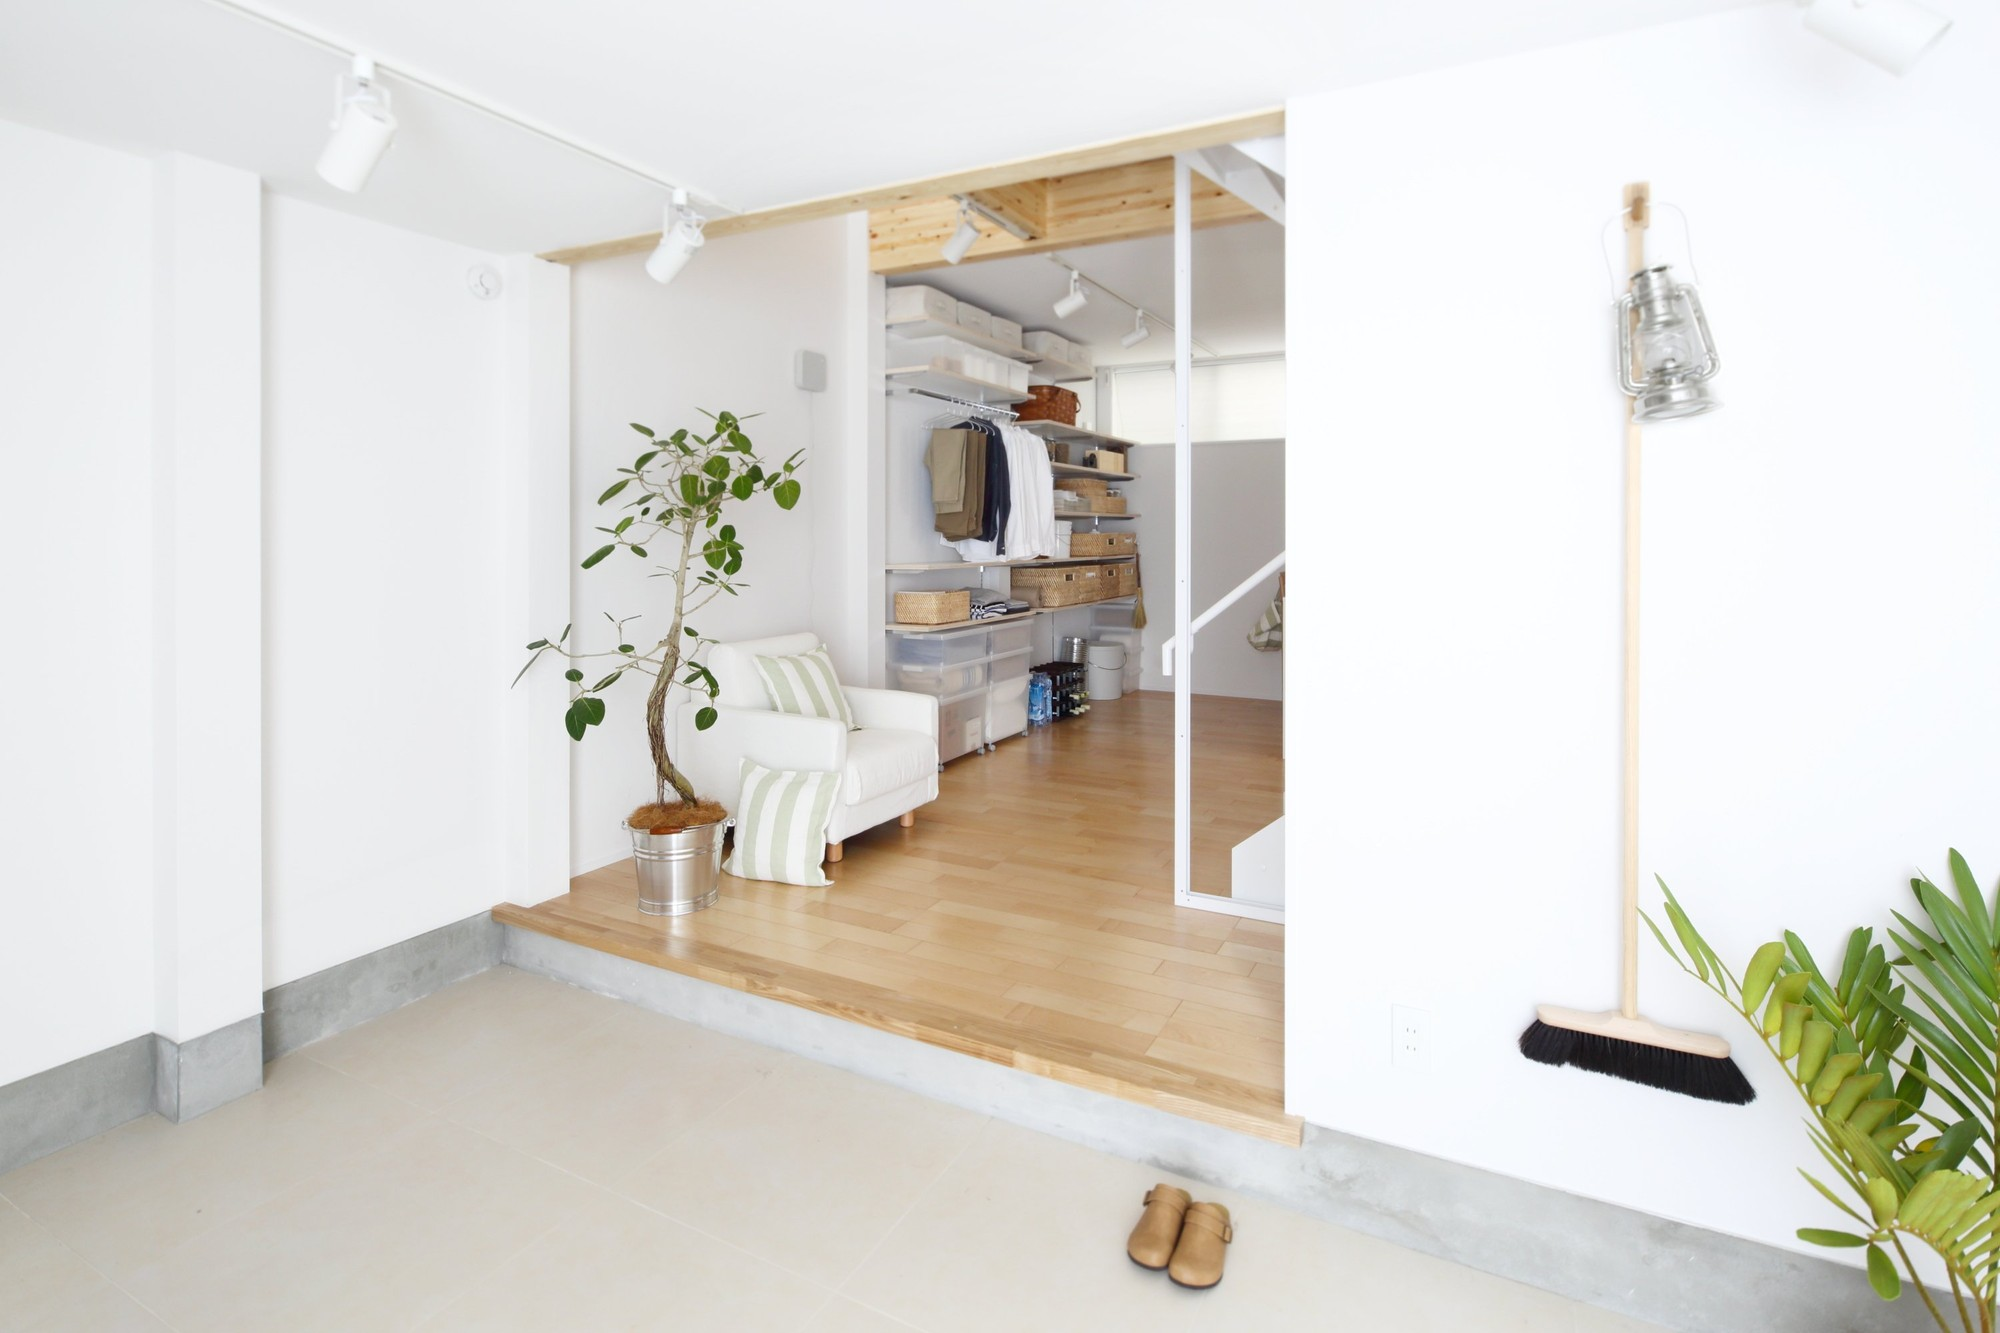 gallery of design your own home with muji's prefab vertical house - 7